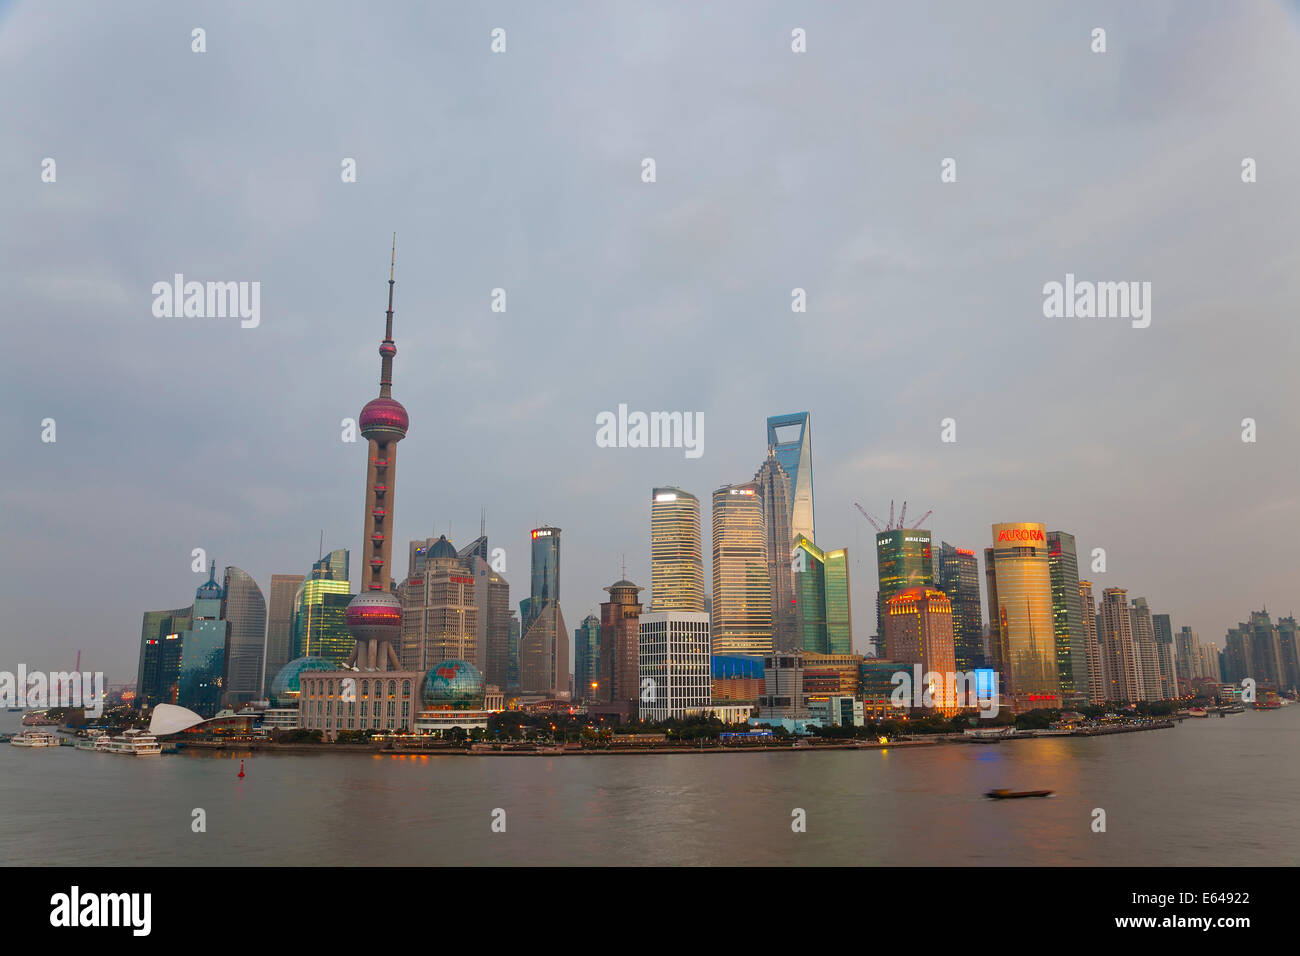 Barges and Pudong skyline, Shanghai, China - Stock Image